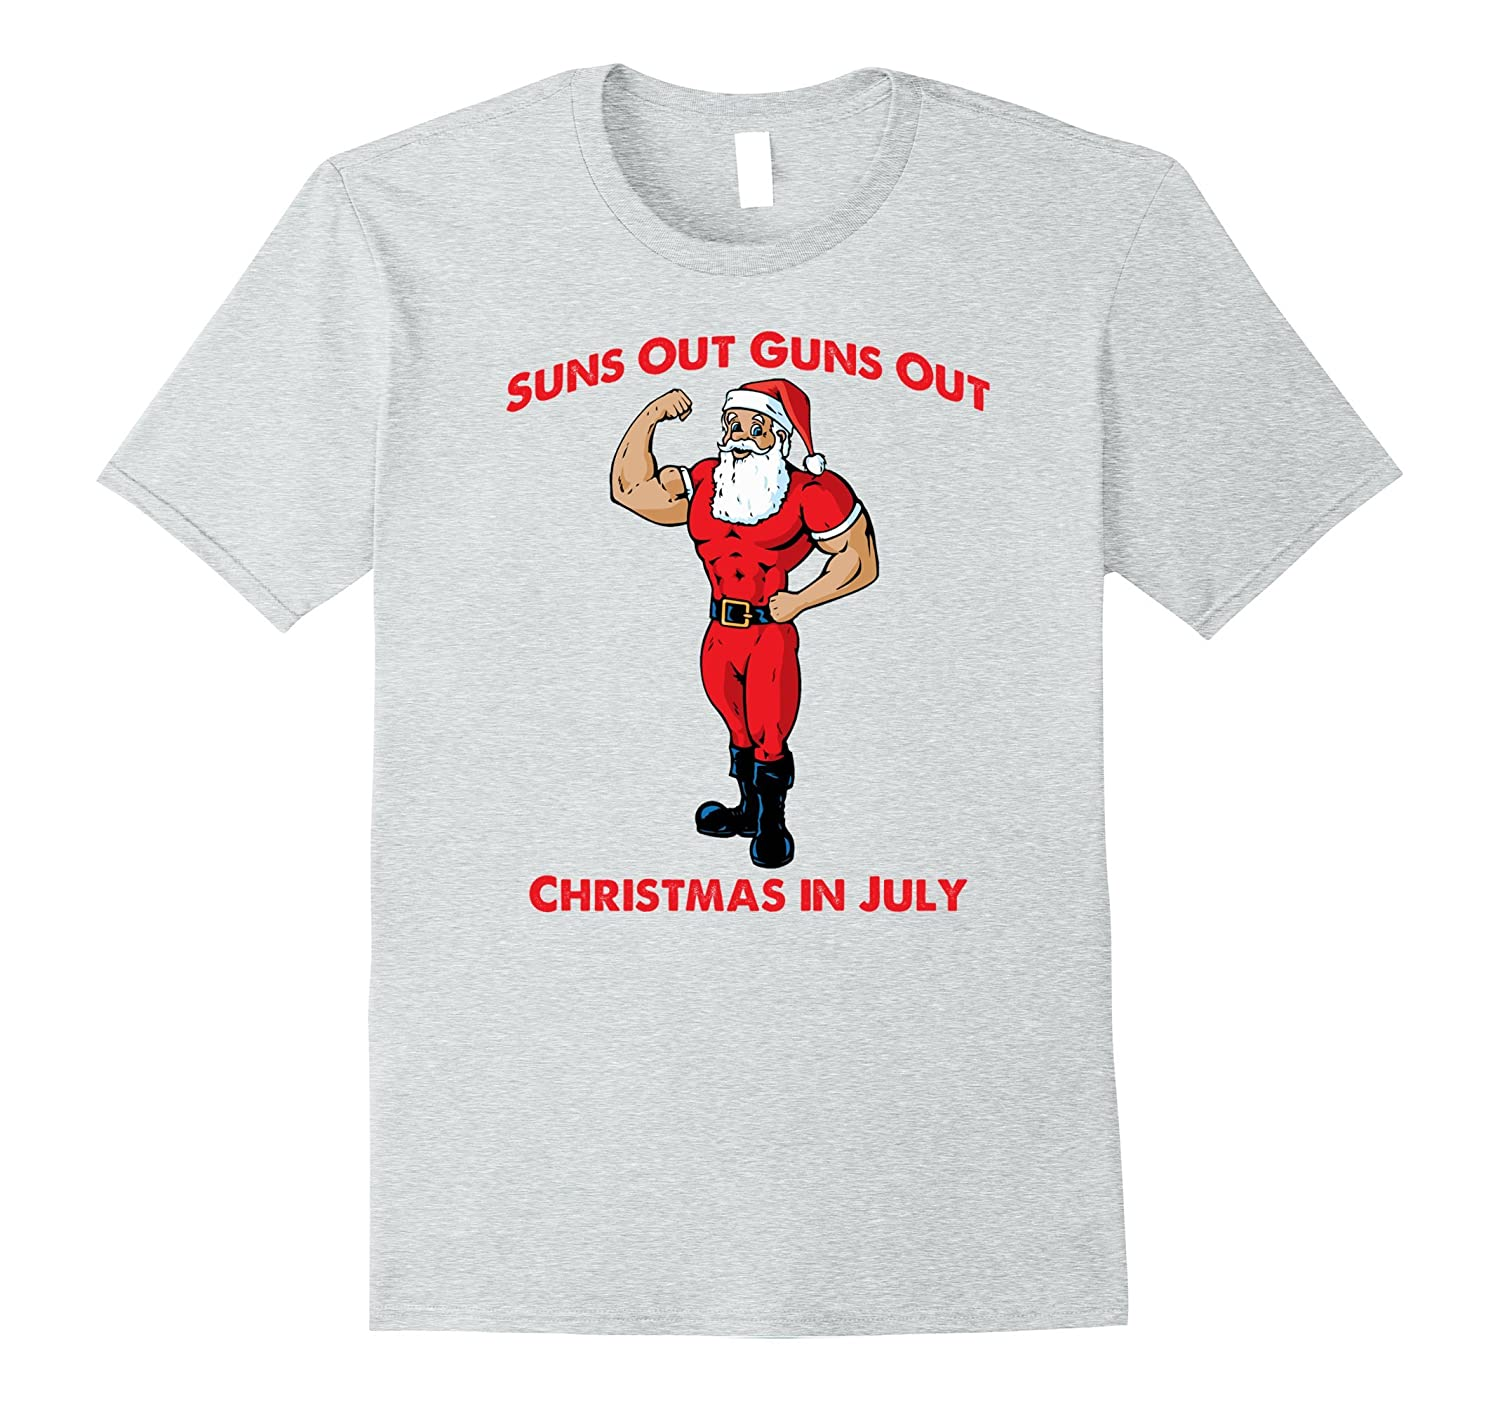 Suns Out Guns Out Christmas In July TShirt for Men Boys Kids-TH ...